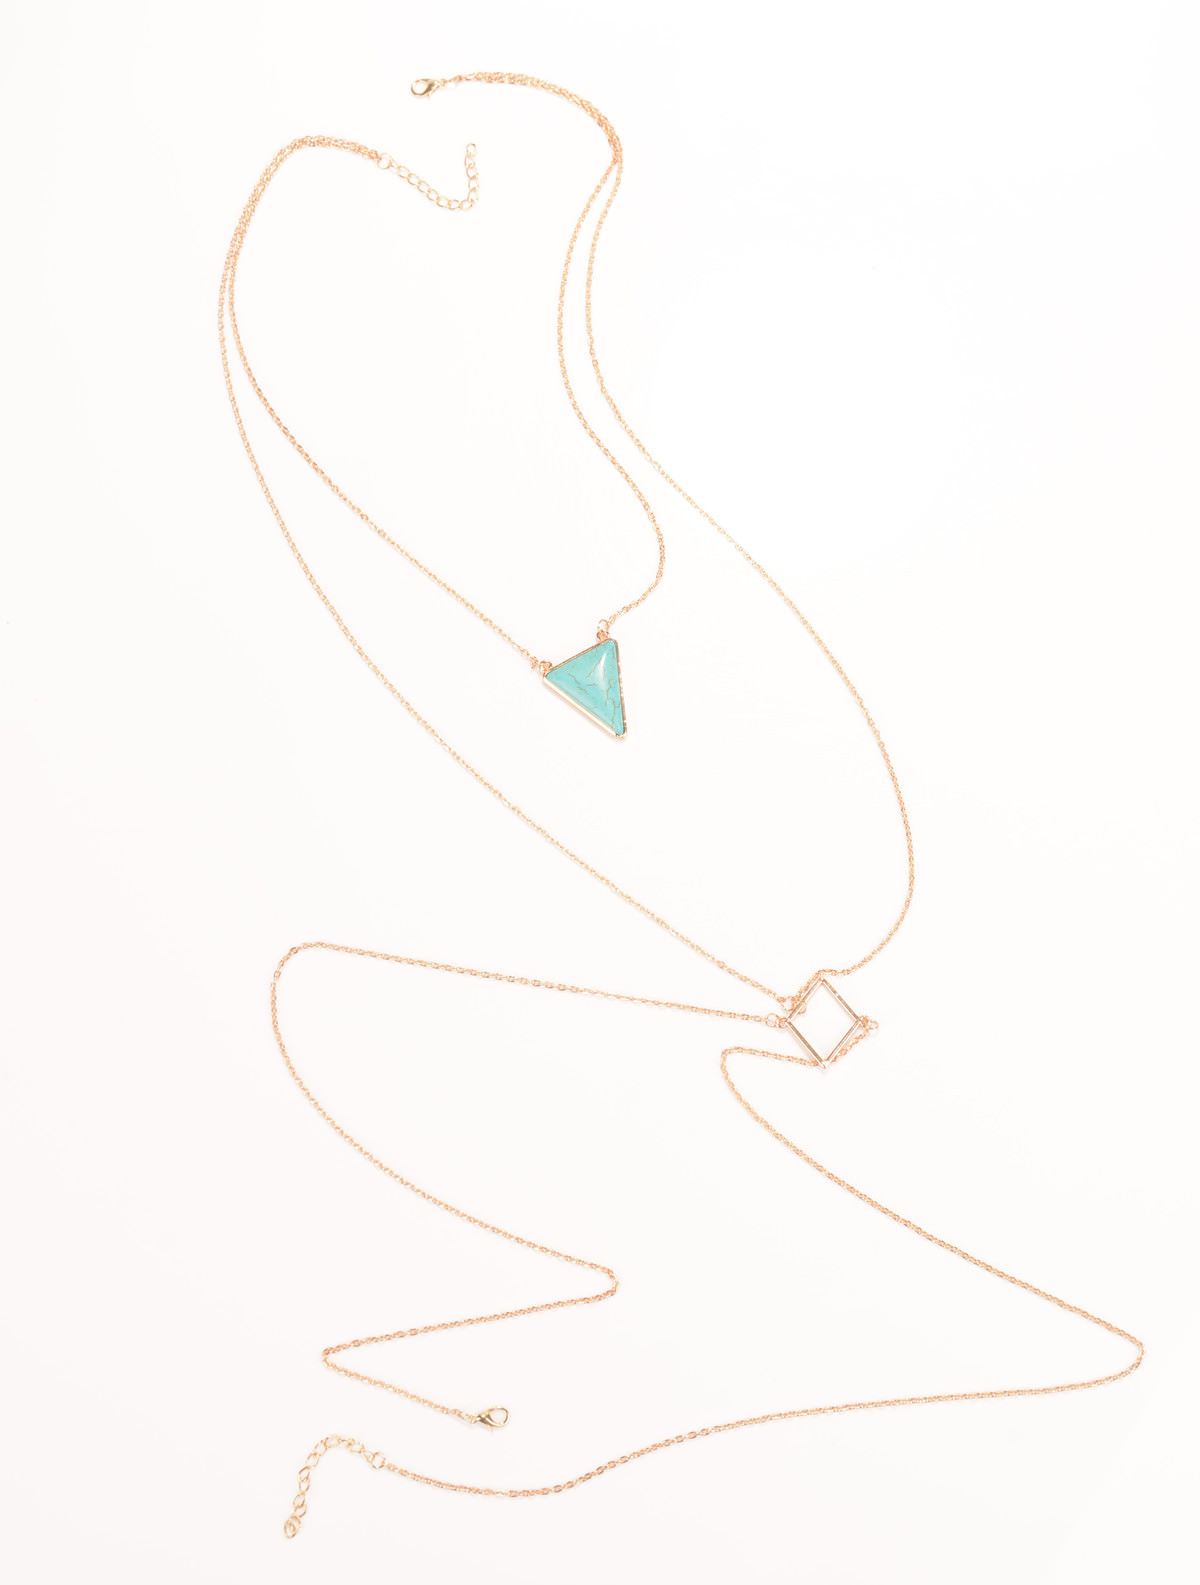 1960-e3be6afb4eec0b811f3a2776f35fe7af Captivating Body Chain Necklace With Bijoux Triangle Turquoise Stone